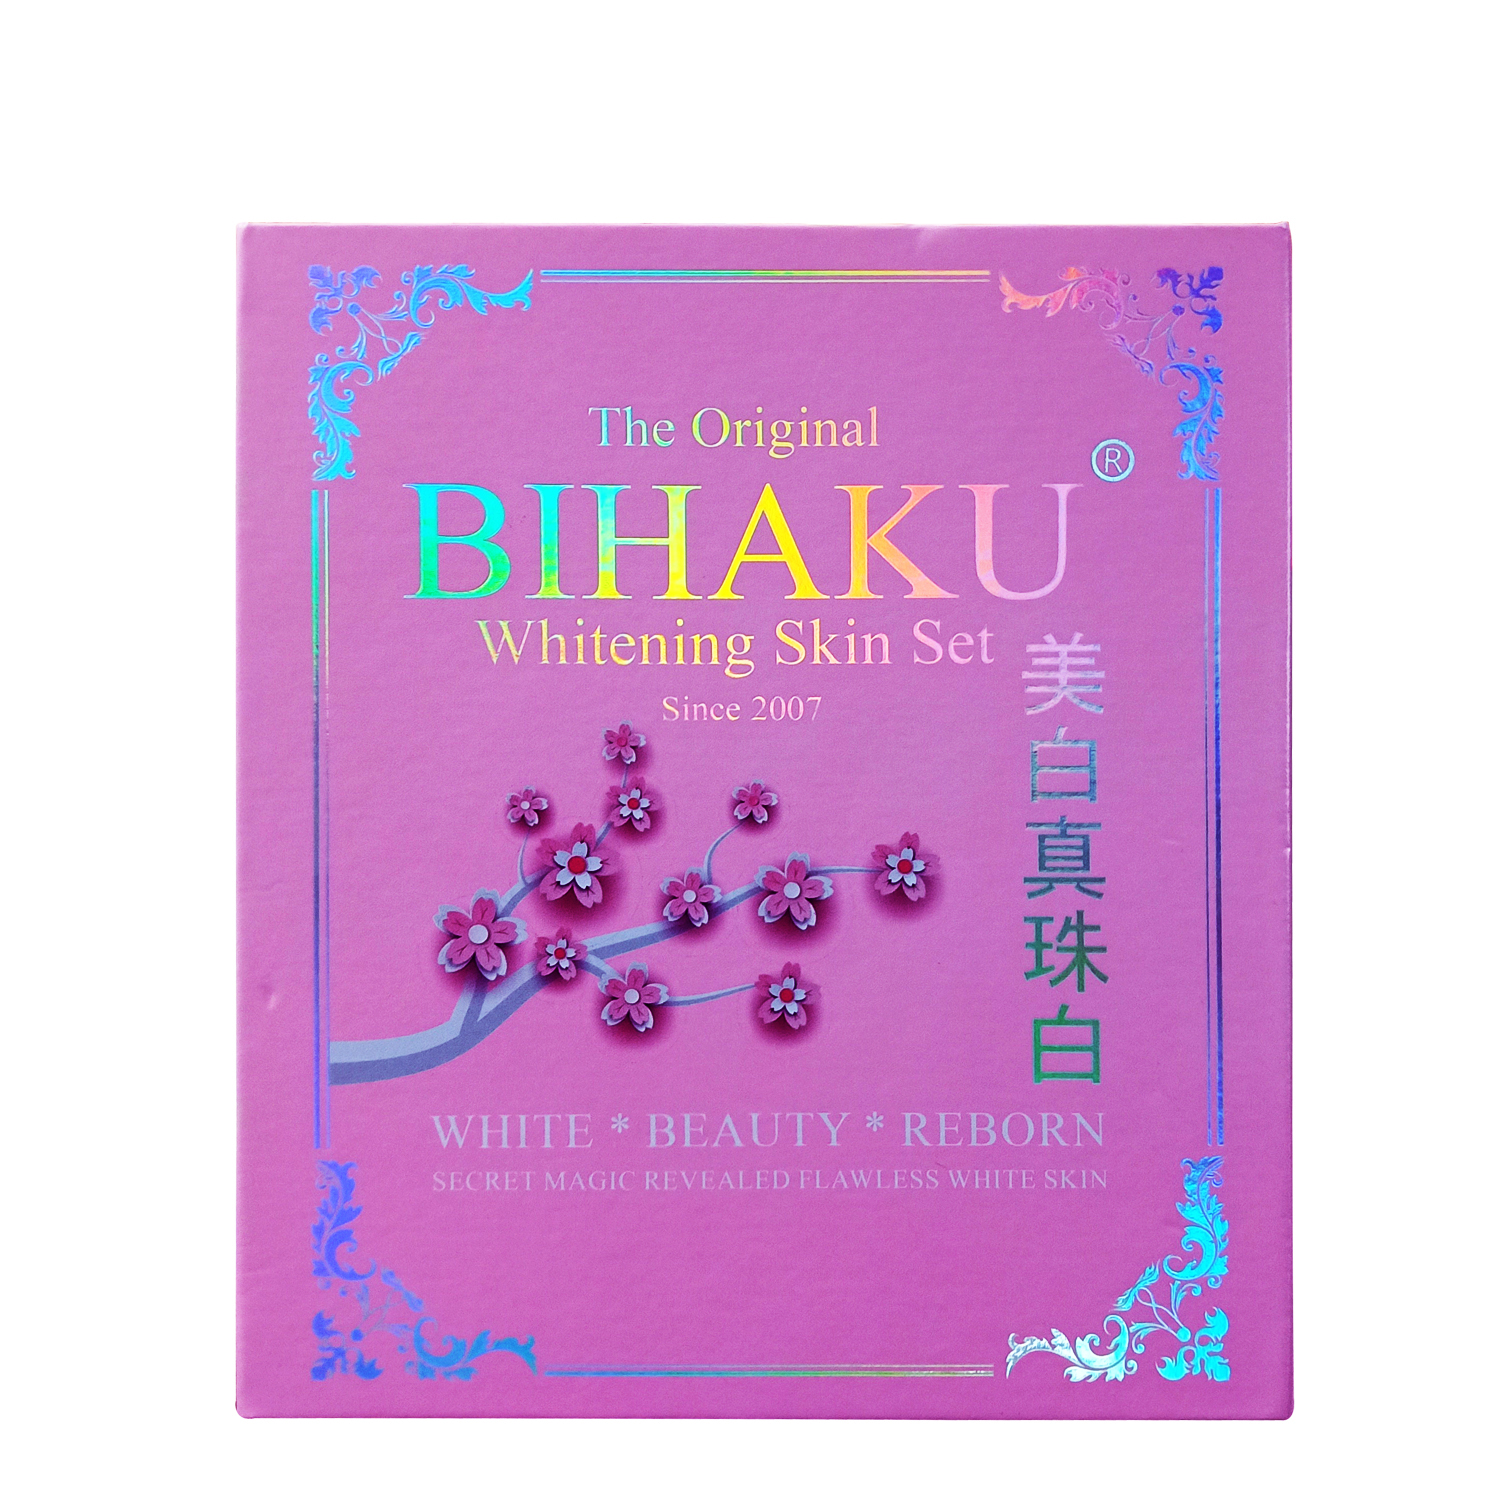 THE ORIGINAL BIHAKU WHITENING SET WHITE - BEAUTY - REBORN